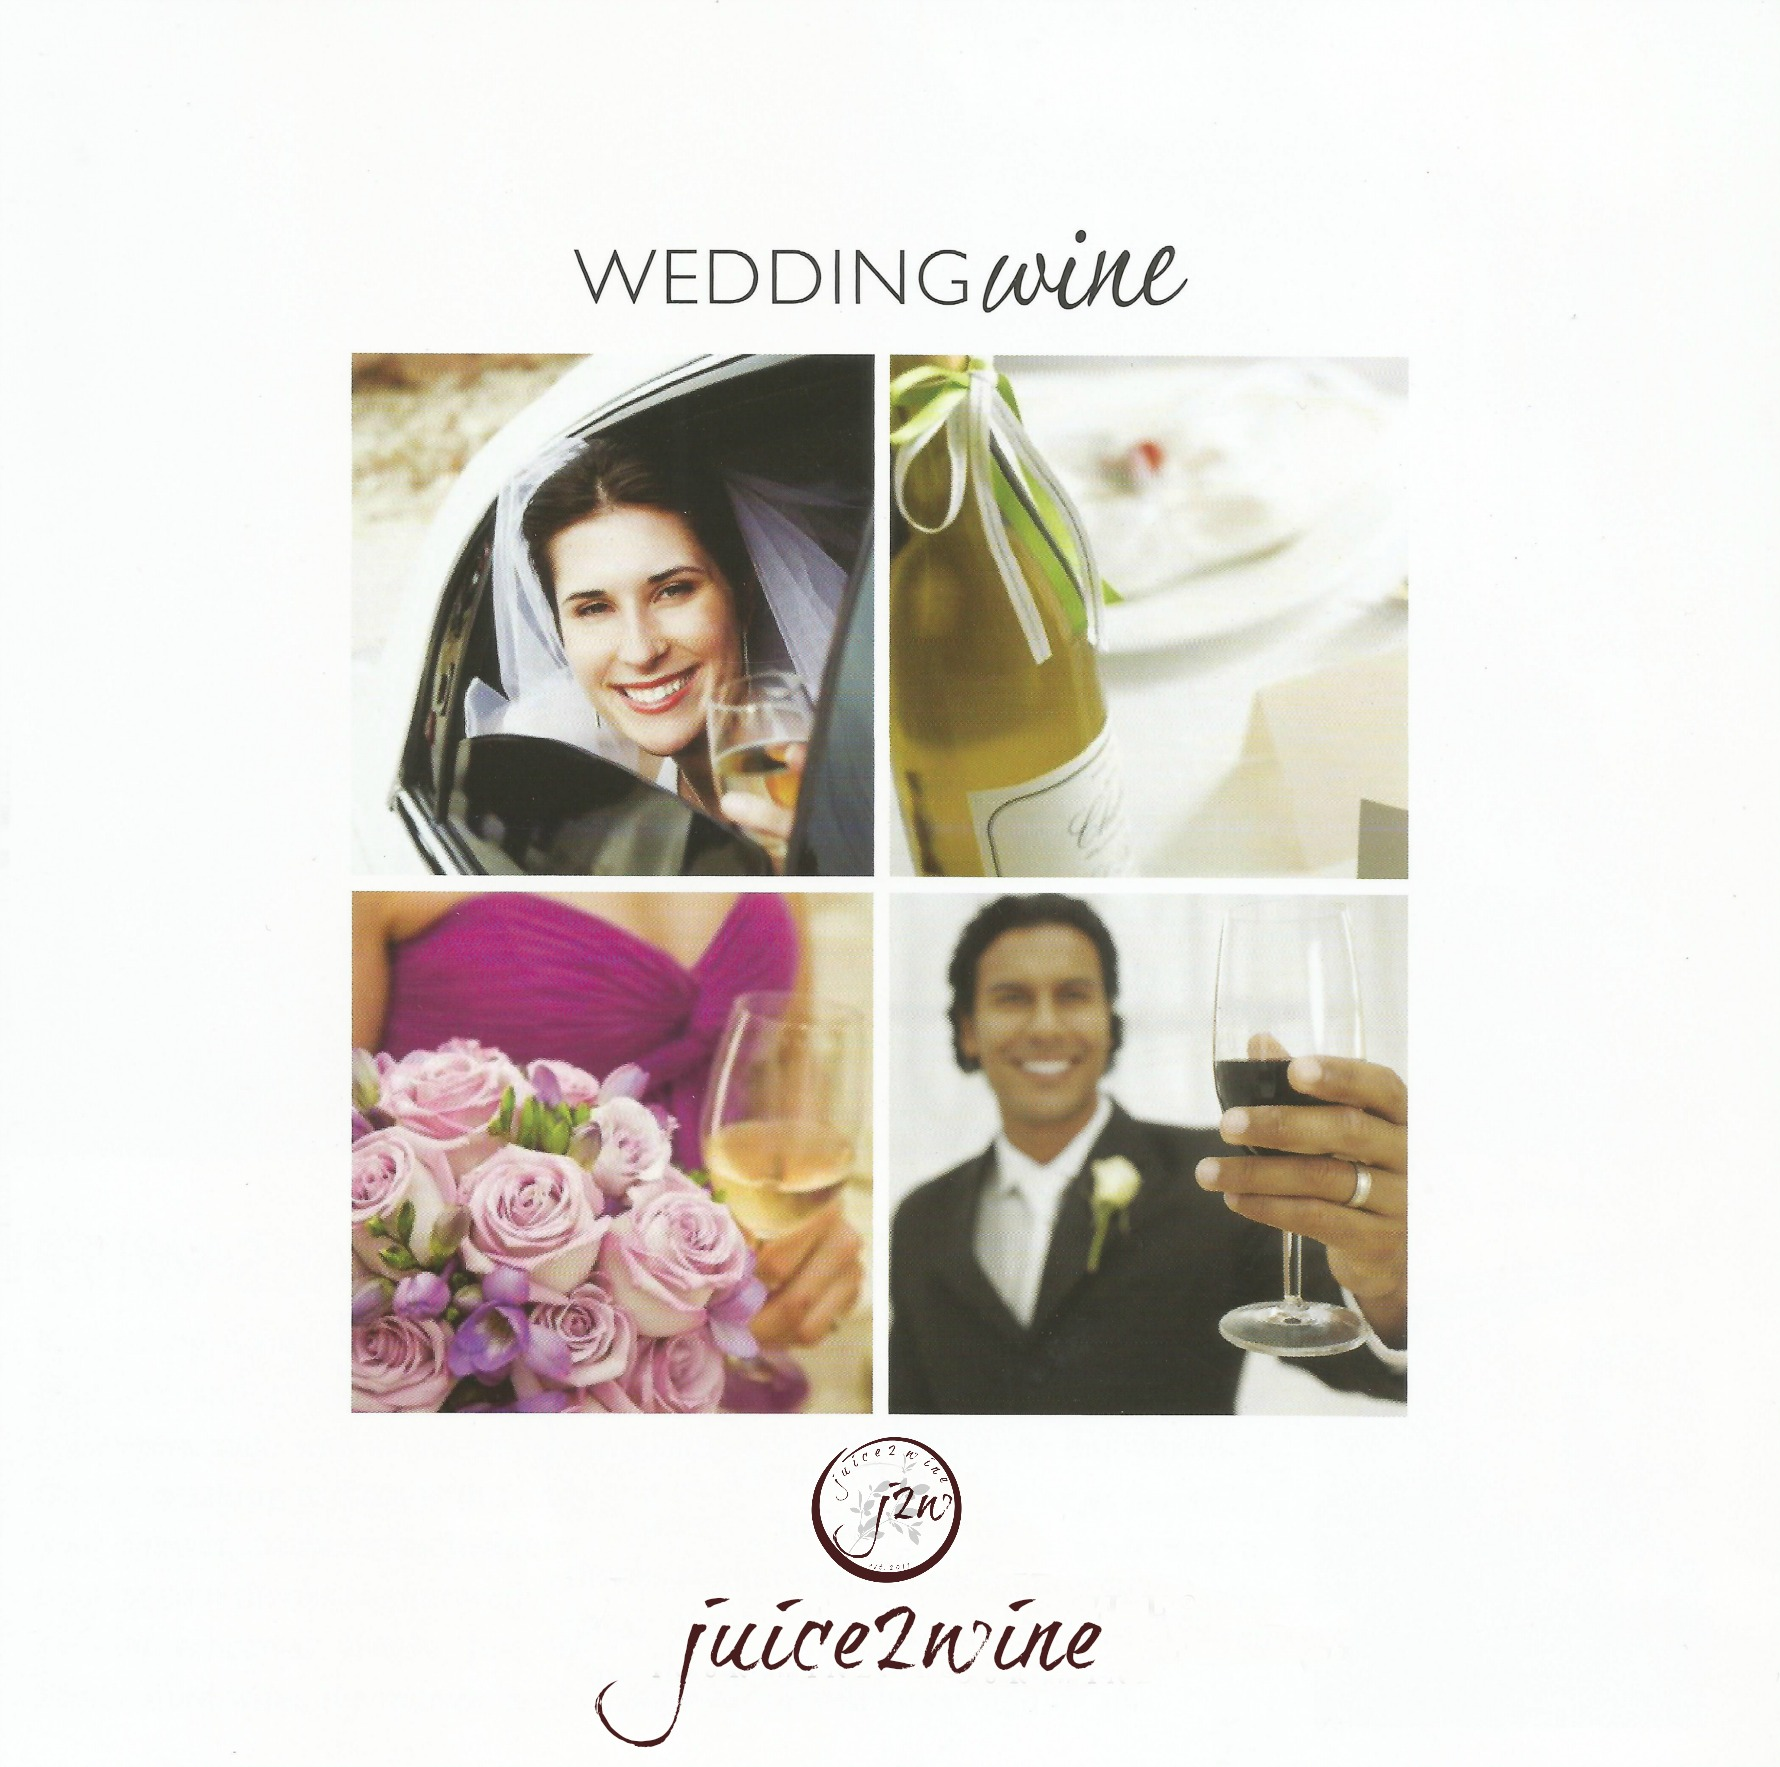 Juice2Wine is where you can choose your special wine for your wedding and create a memorable moment with family and friends while you craft it together.